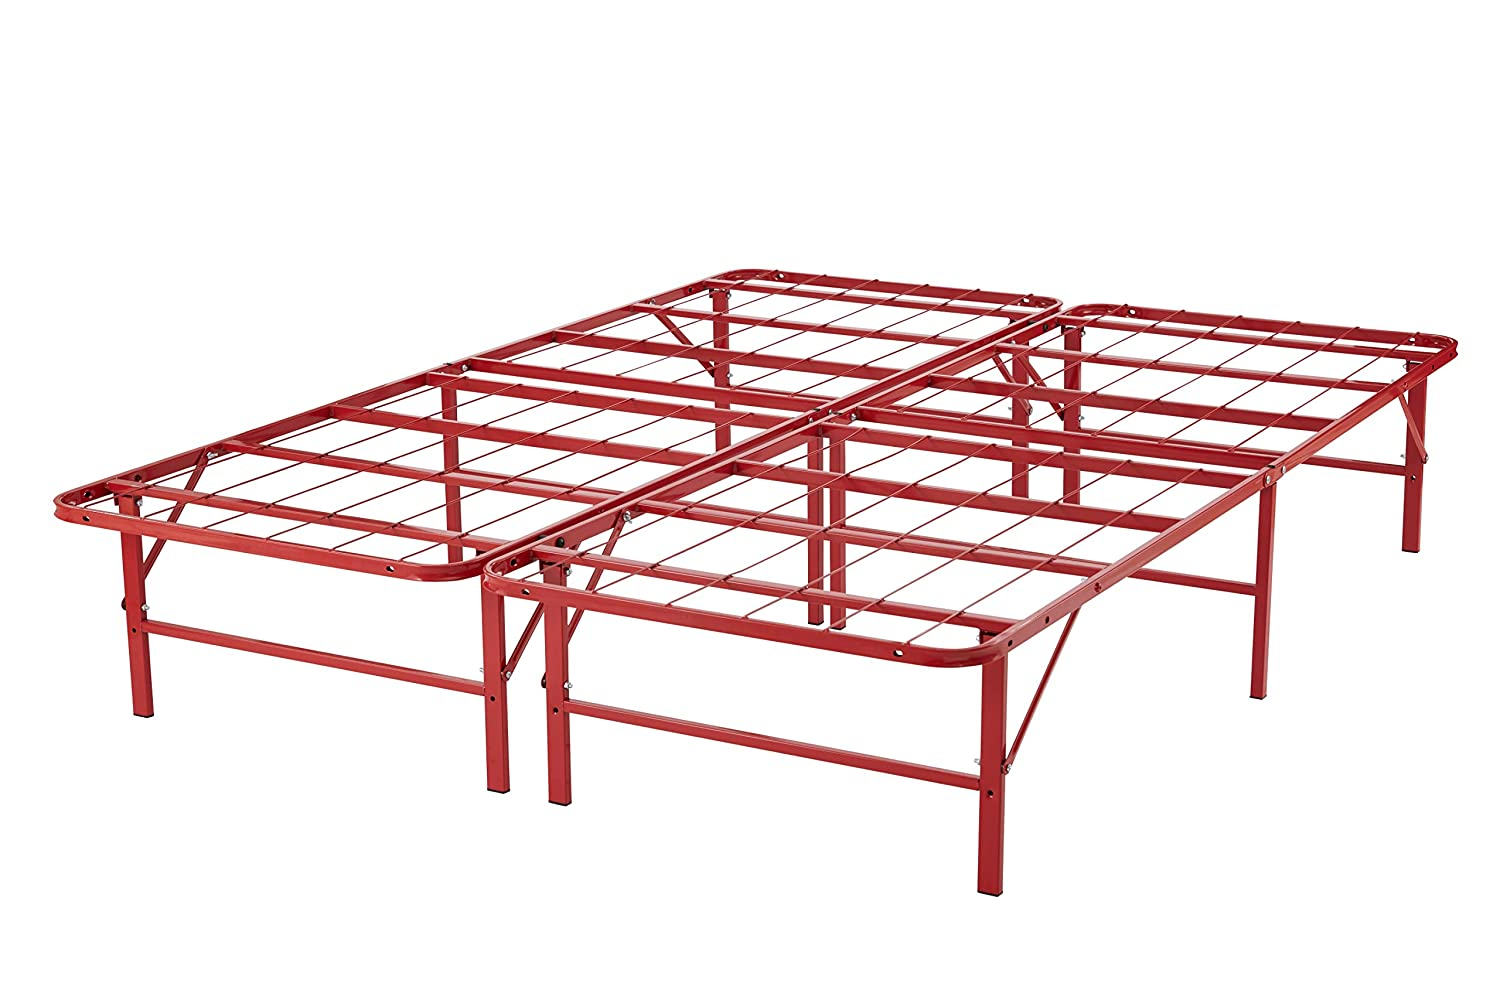 Naomi Home idealBase 14 Platform Metal Bed Frame – Mattress Foundation Box Spring Replacement Red Twin XL